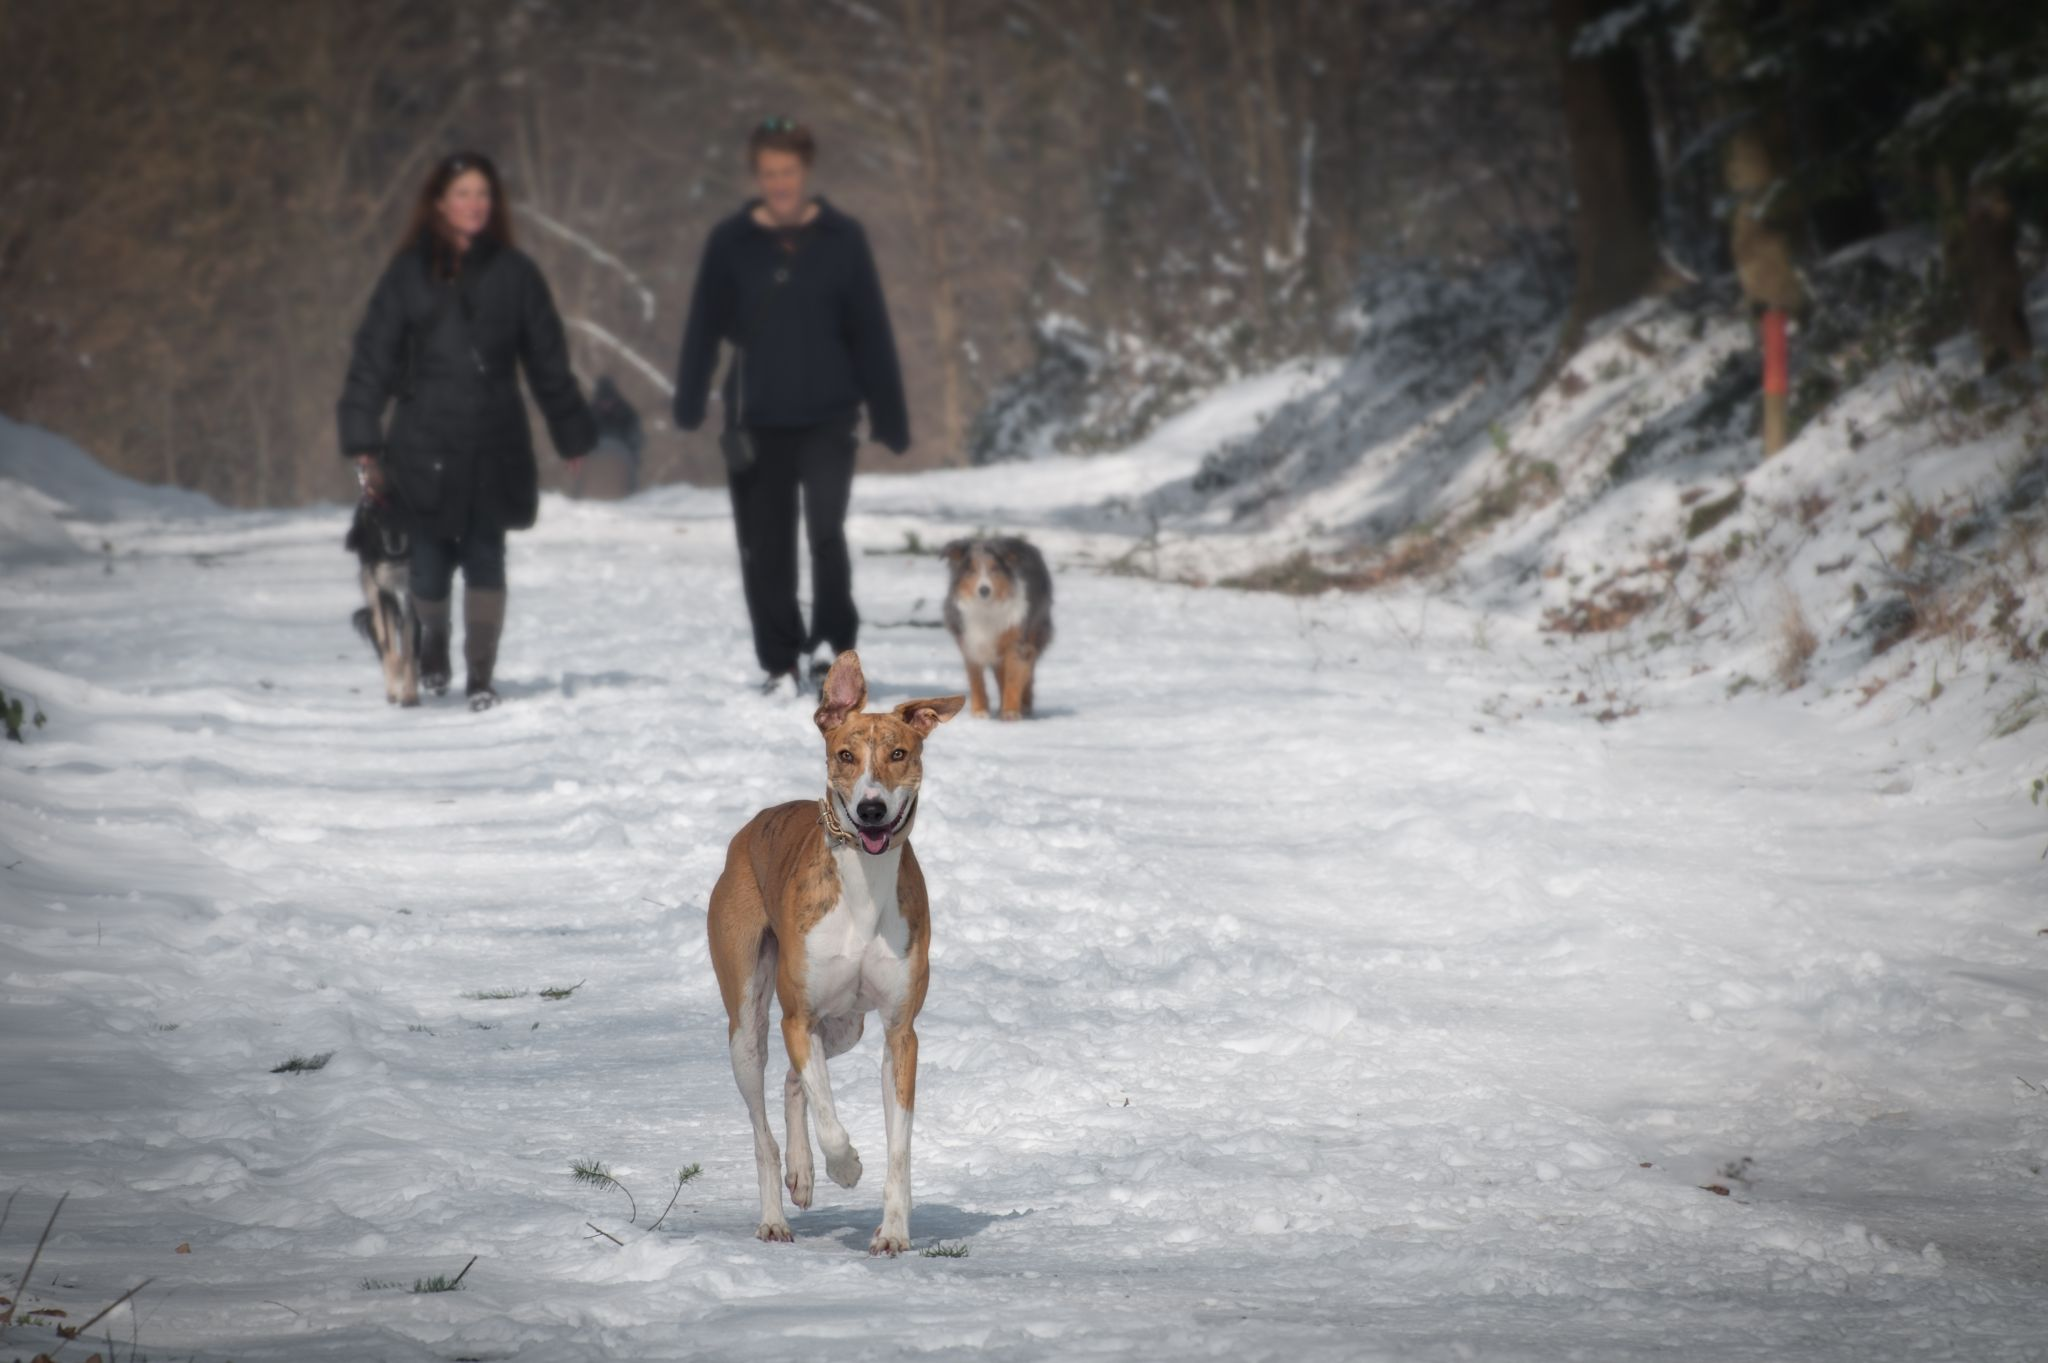 Man and woman walking dogs in the snow - can you get your ex back using the law of attraction?